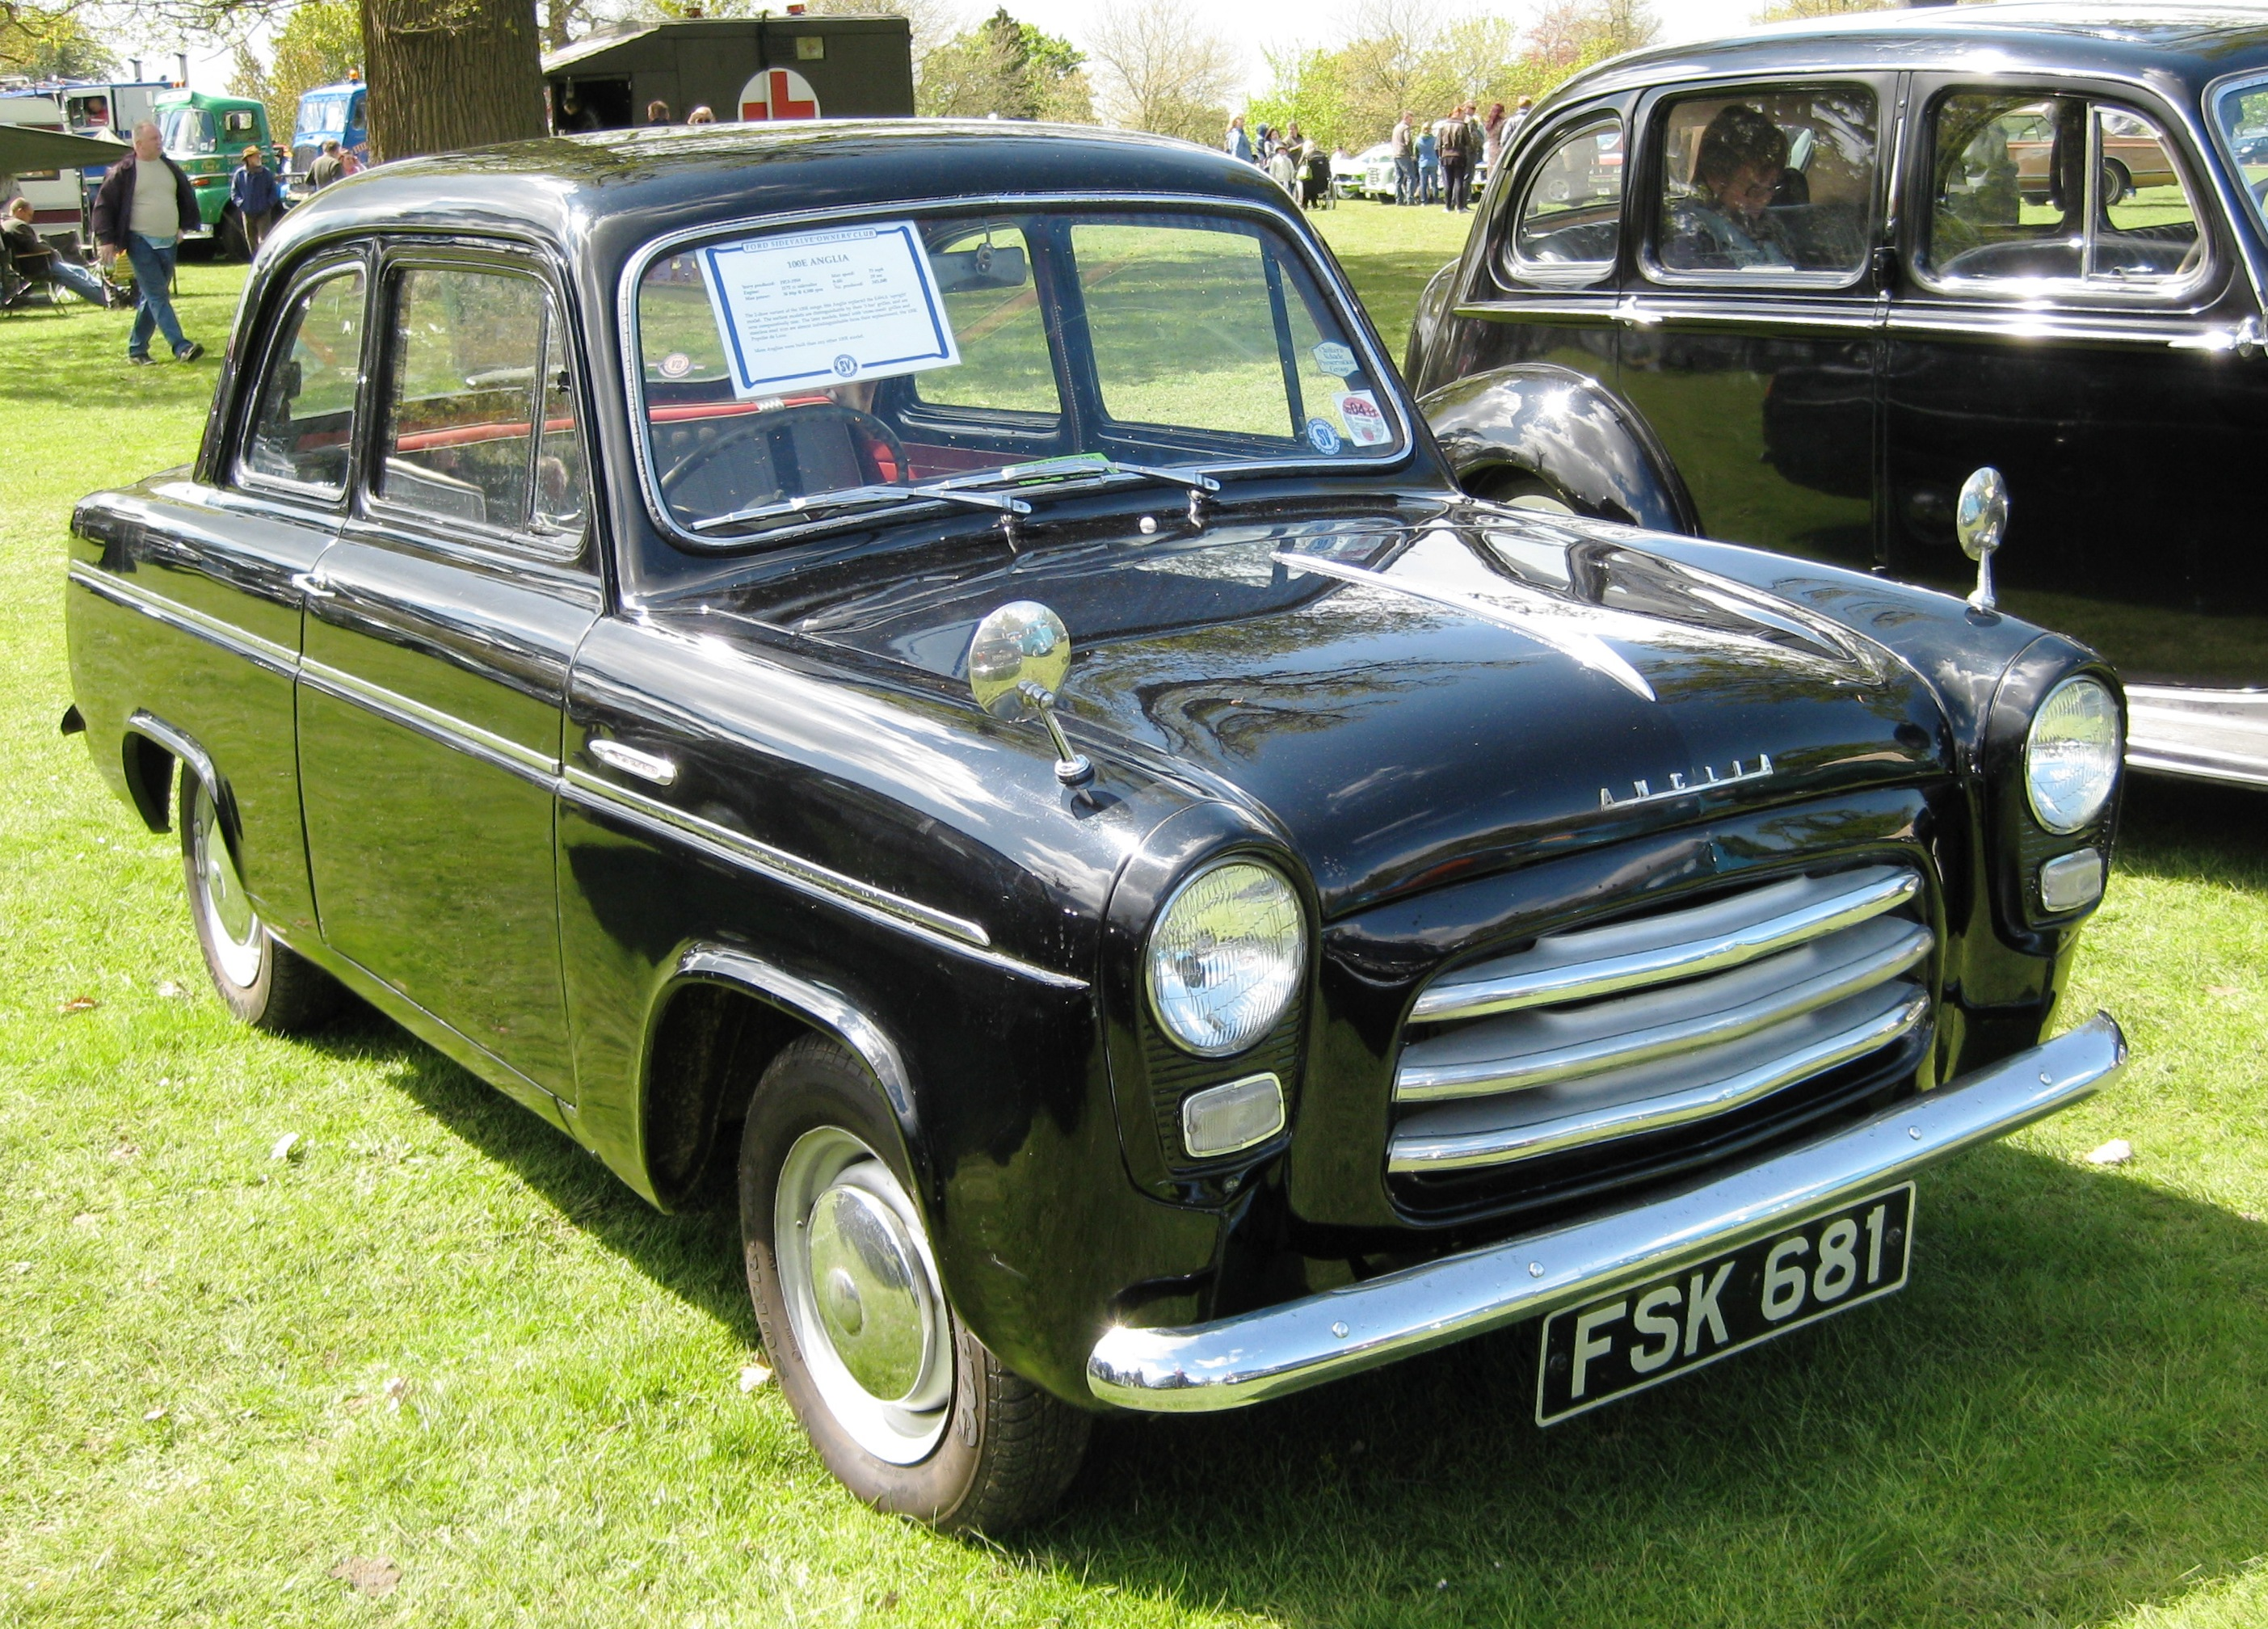 File:Ford Anglia 1172 cc December 1955.JPG